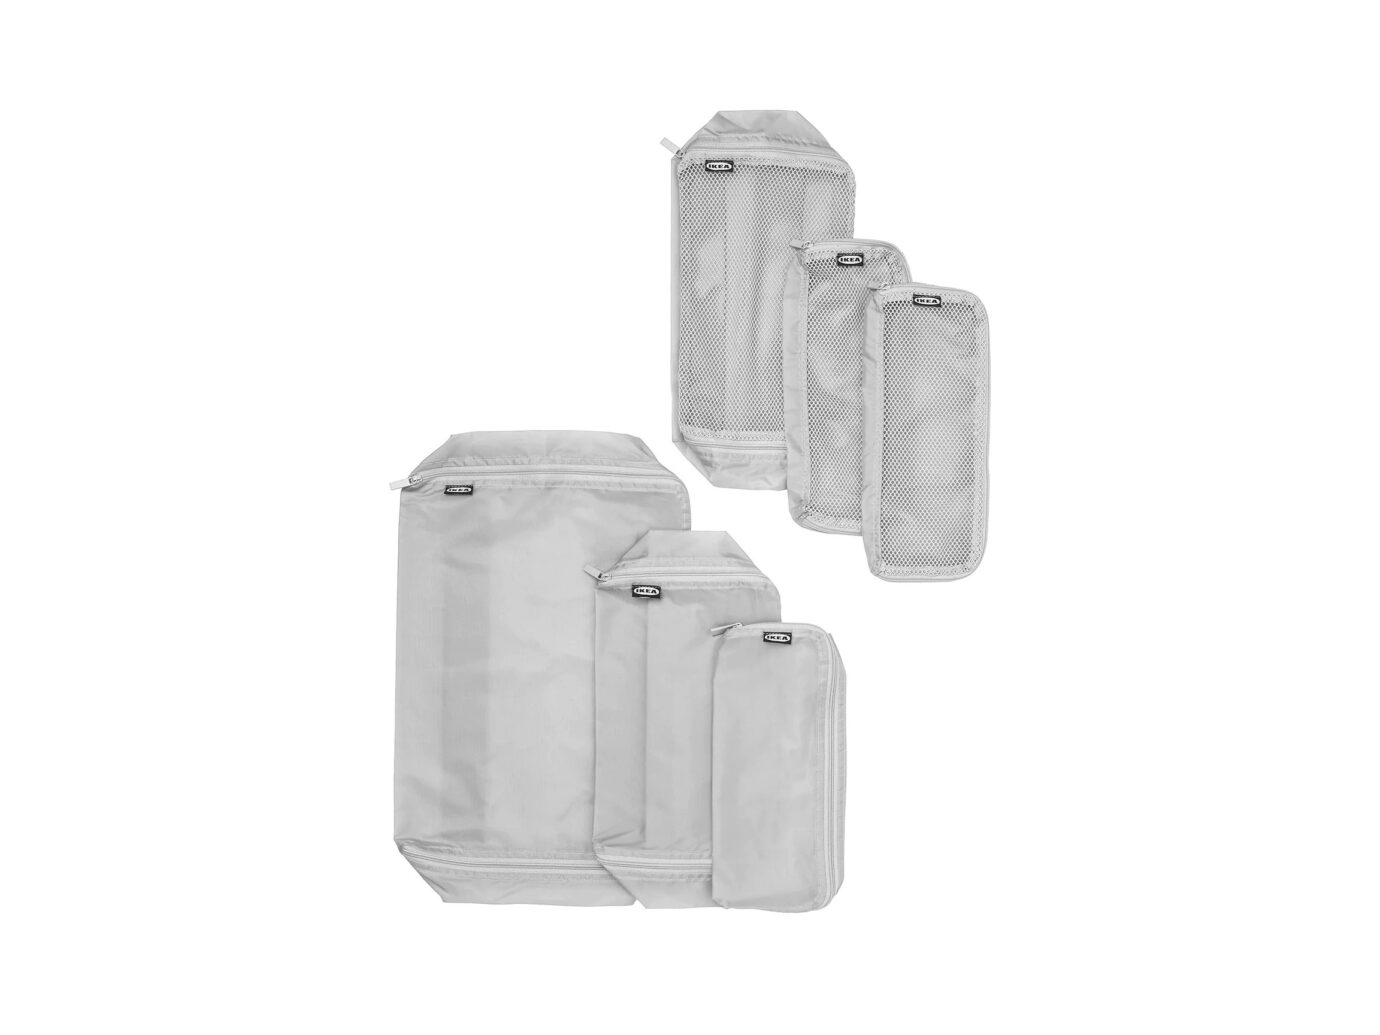 IKEA Forfina 6-piece Travel bag set